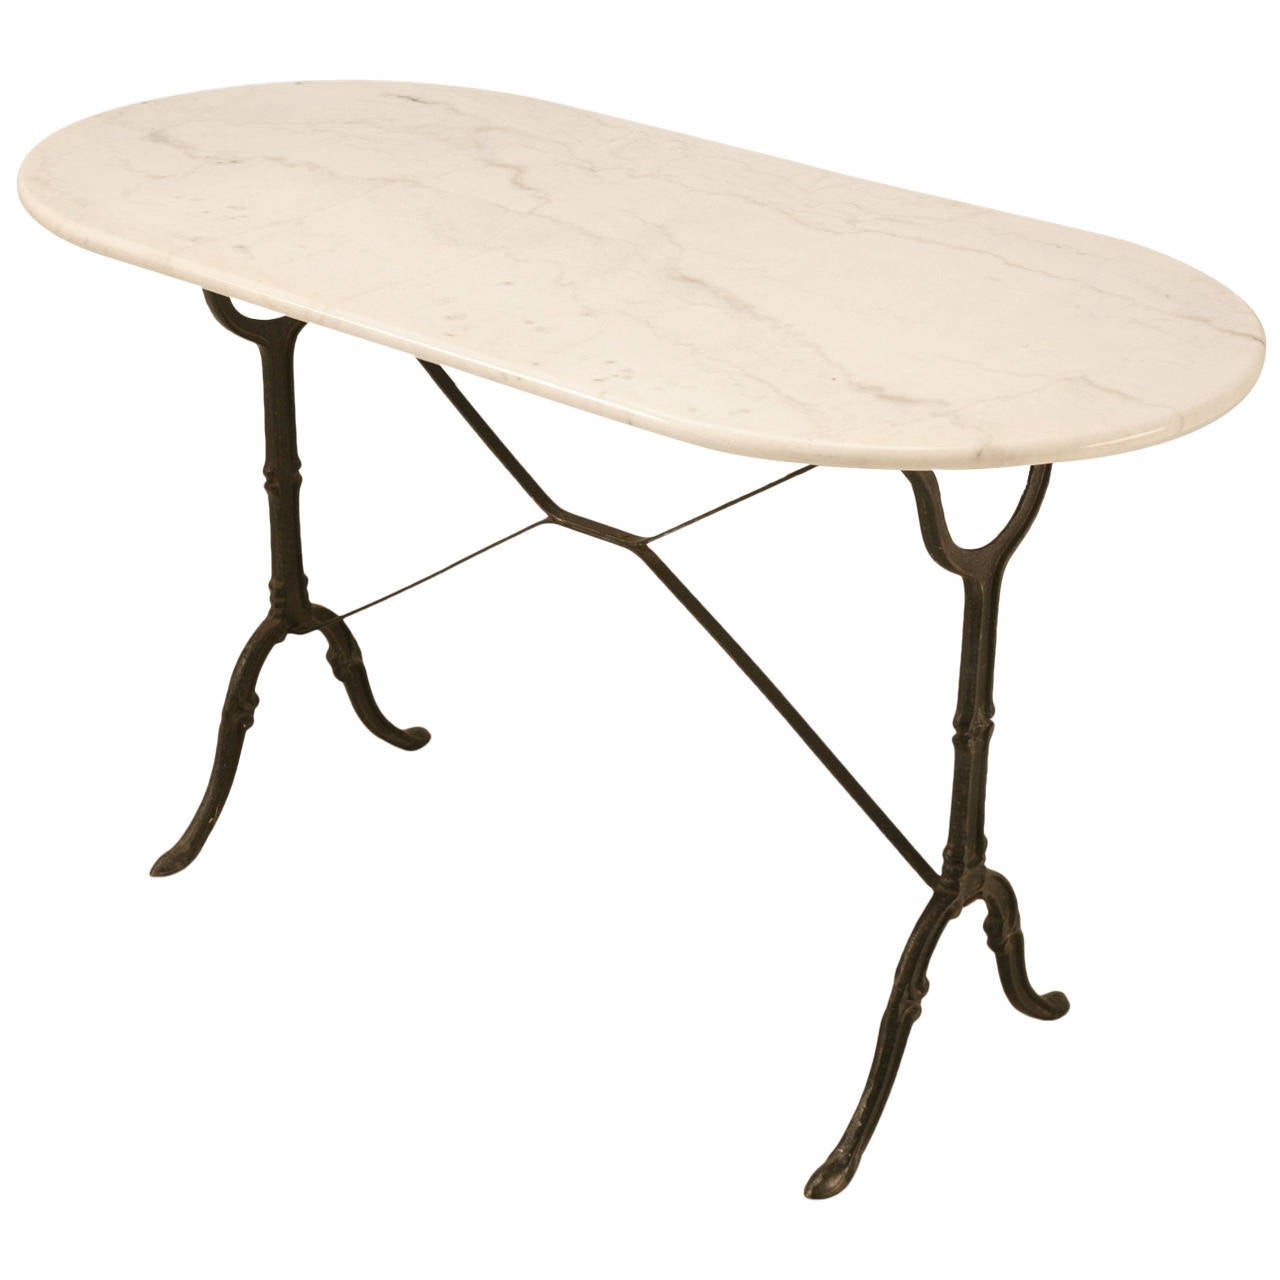 antique french bistro table and chairs bean bag for boats vintage with marble top at 1stdibs